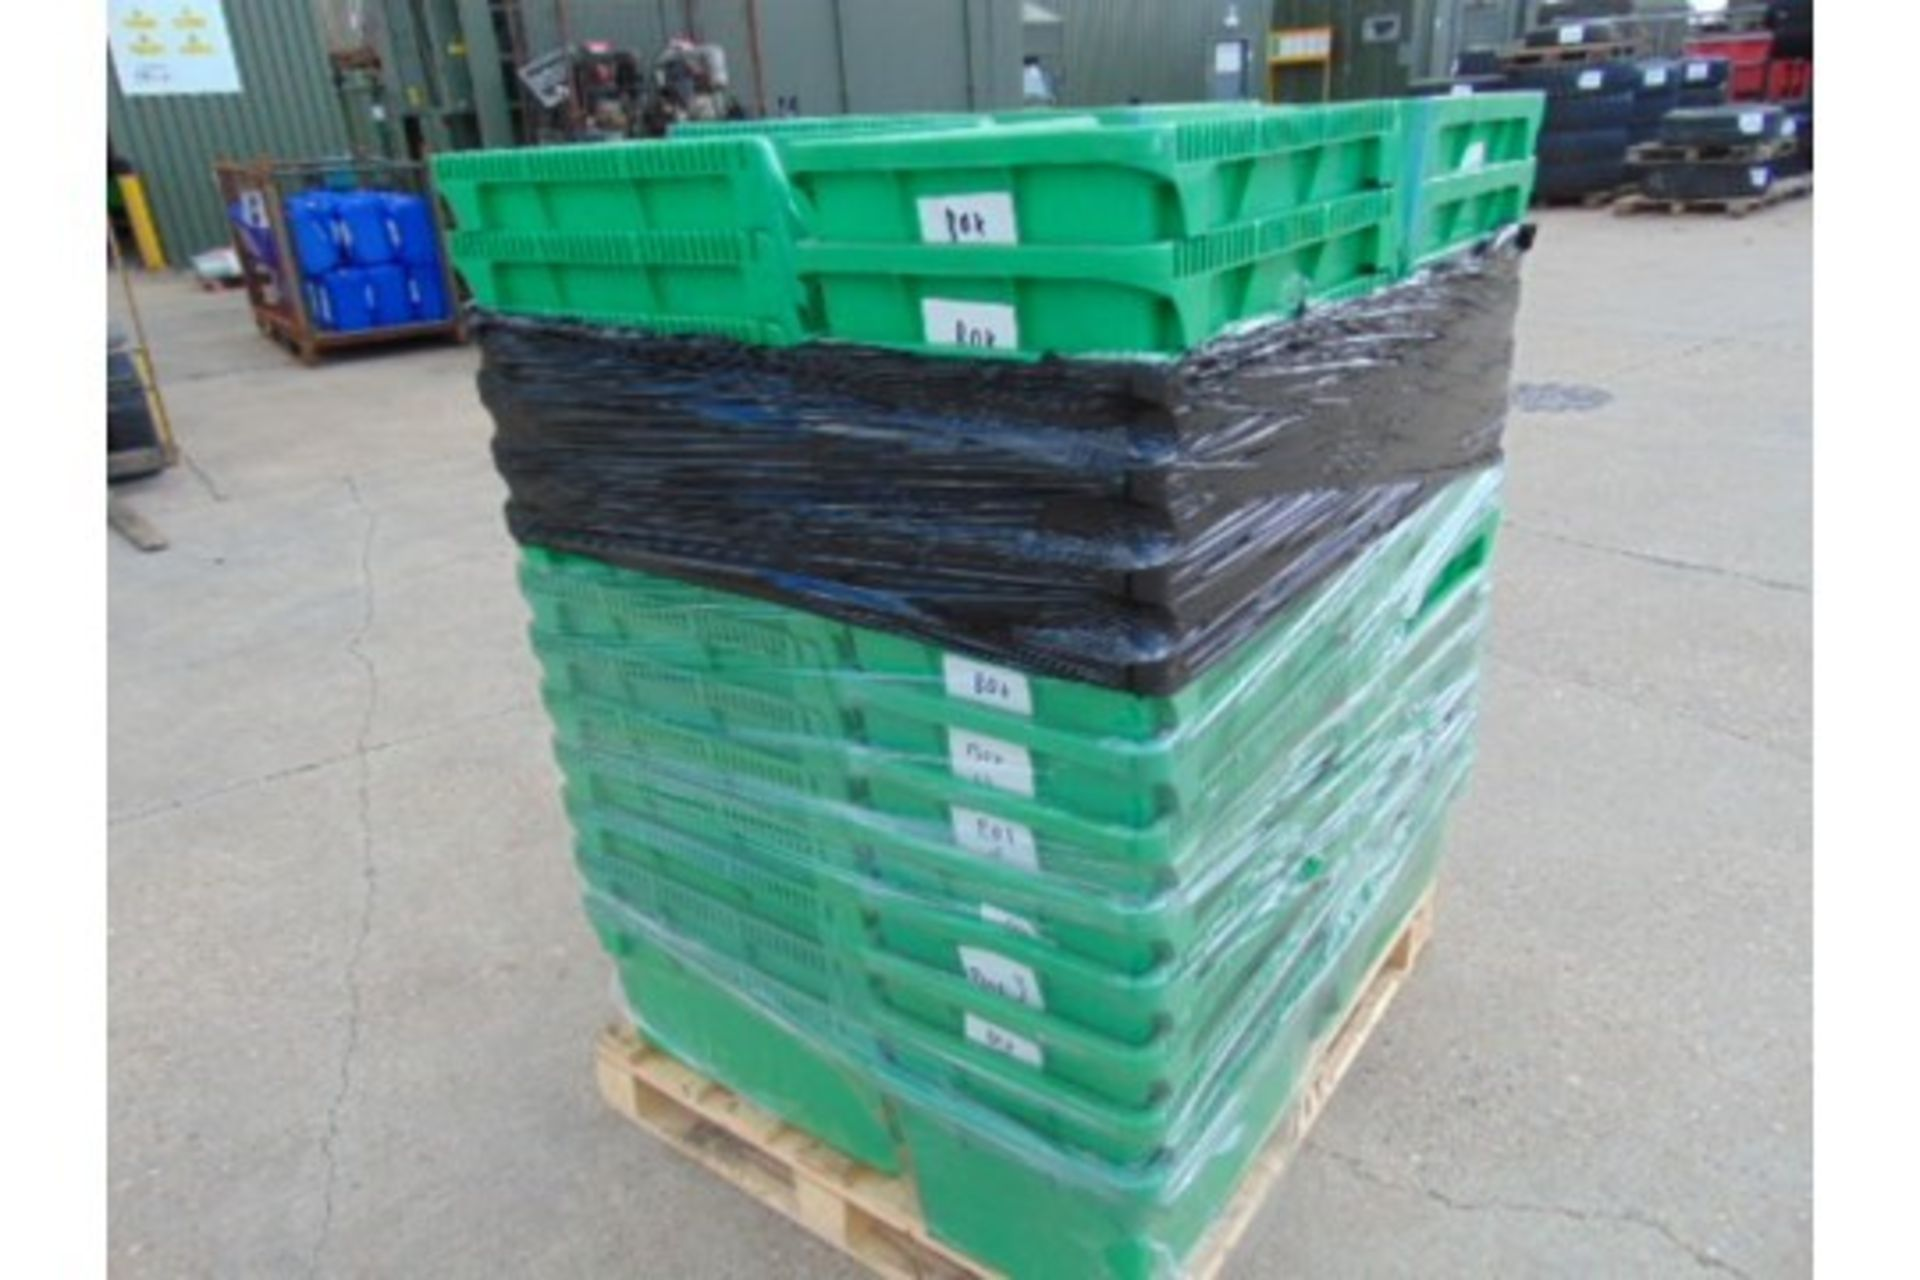 Lot 26799 - 65 x Schafer Pew W50 Parts Storage Containers